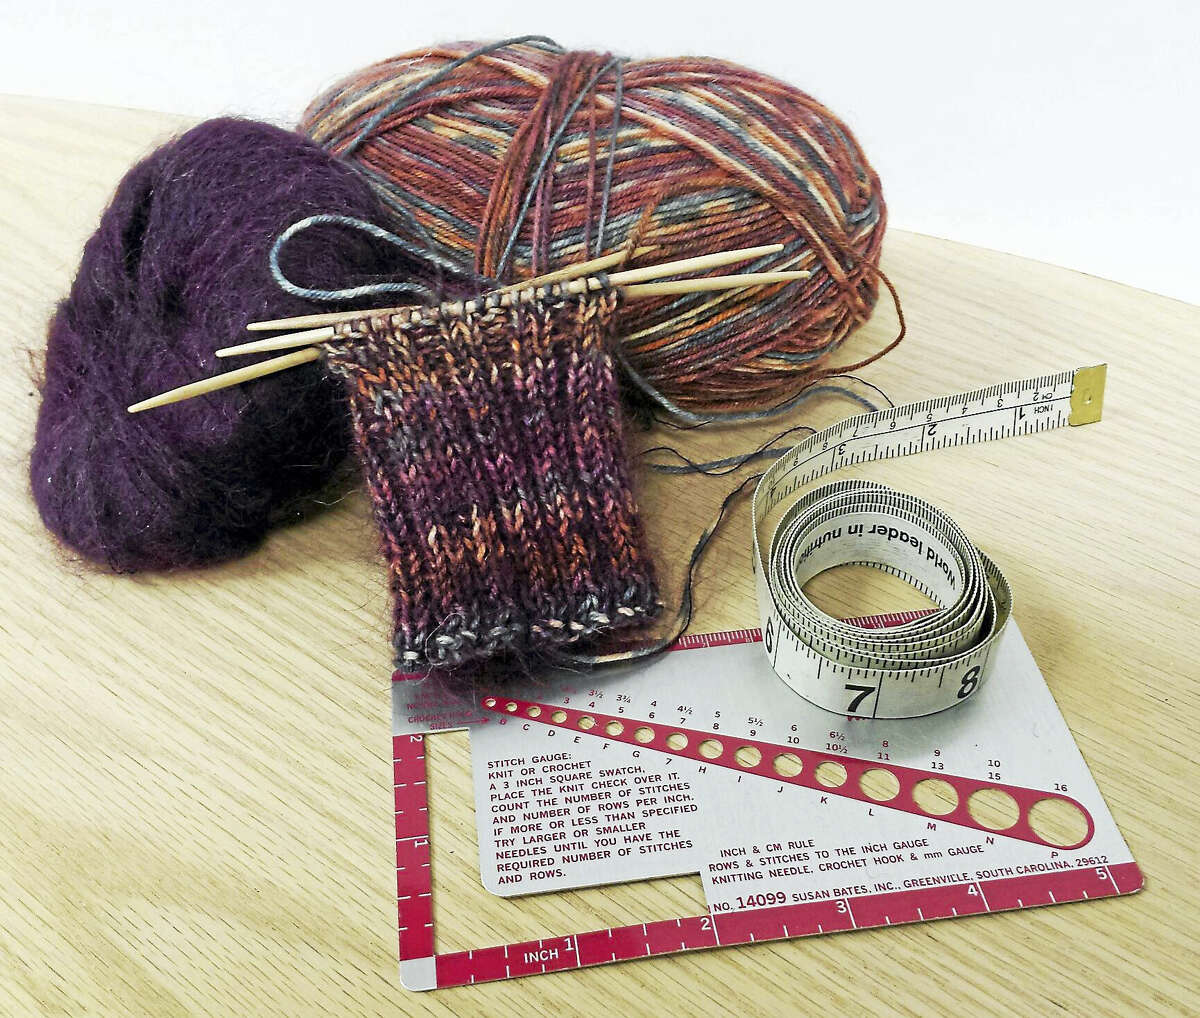 Learning to gauge your stitches saves time in the long run.